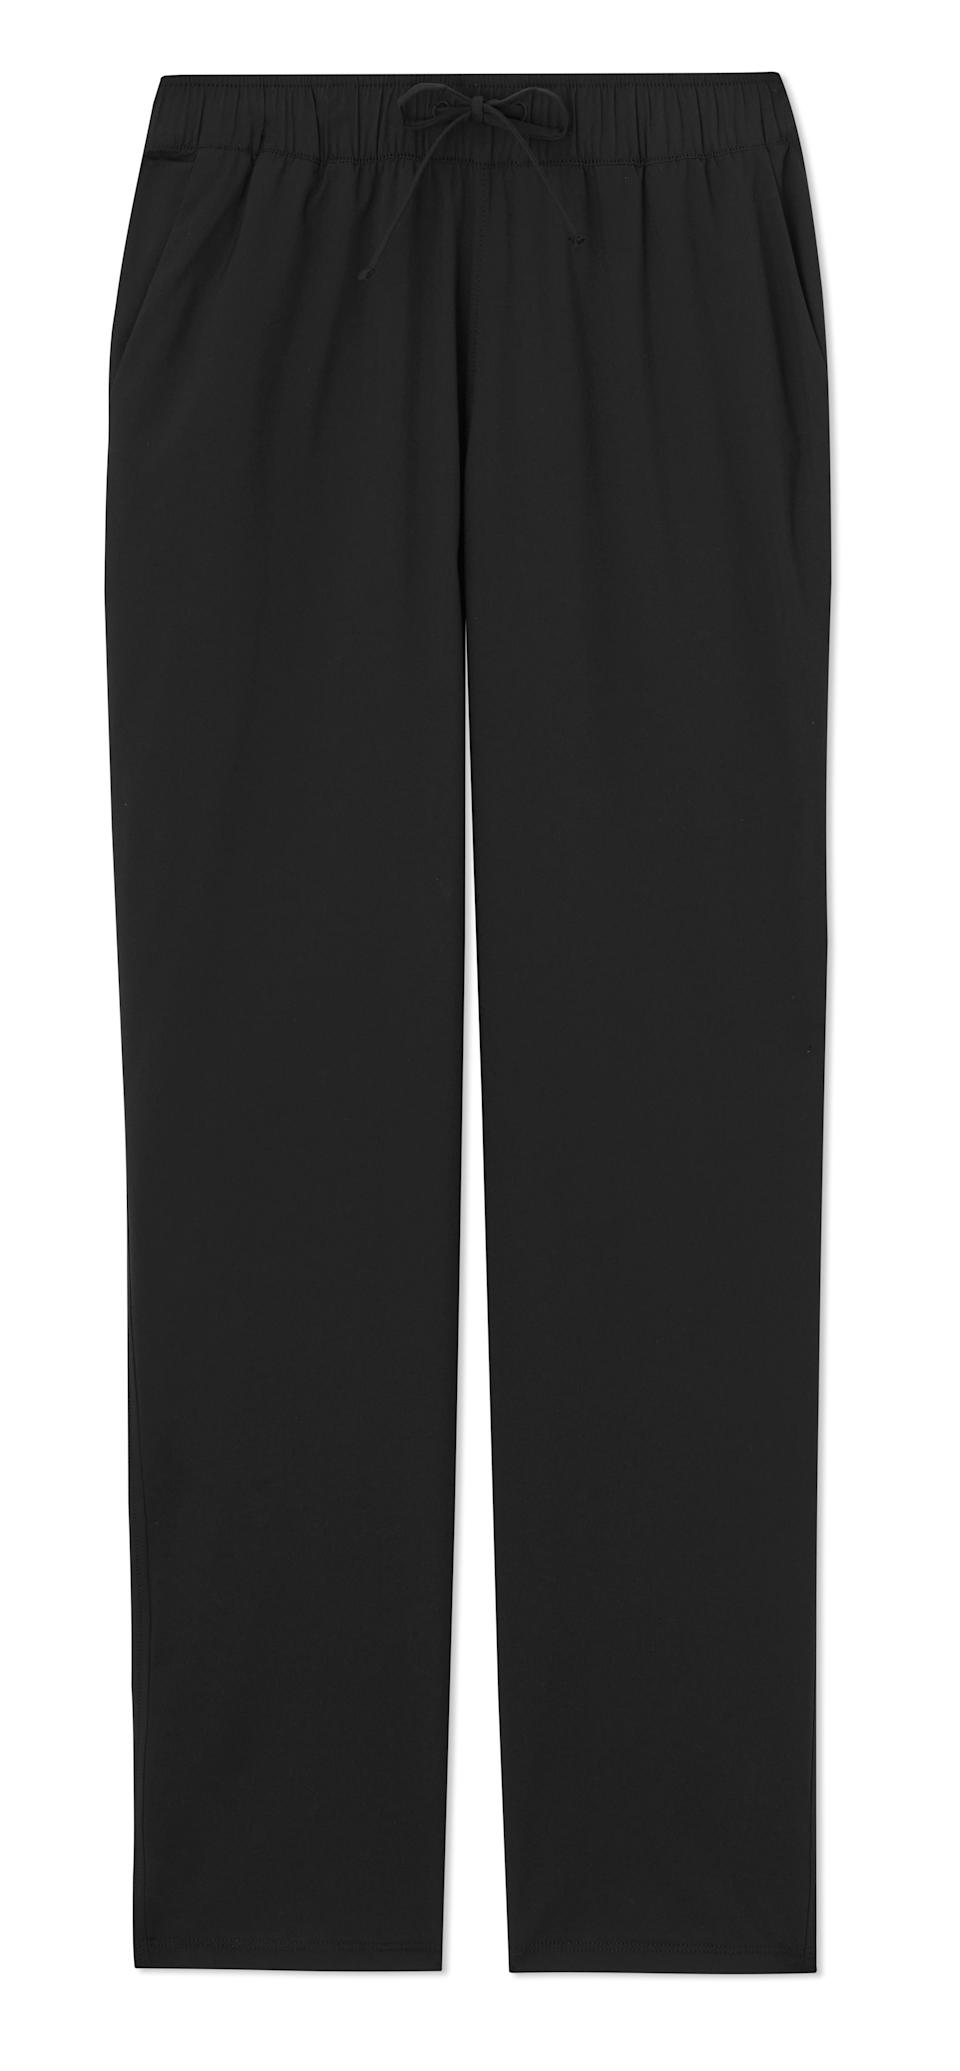 """<br><br><strong>Summersalt</strong> The On-The-Go Pant, $, available at <a href=""""https://go.skimresources.com/?id=30283X879131&url=https%3A%2F%2Fwww.summersalt.com%2Fproducts%2Fthe-on-the-go-pant-sea-urchin"""" rel=""""nofollow noopener"""" target=""""_blank"""" data-ylk=""""slk:Summersalt"""" class=""""link rapid-noclick-resp"""">Summersalt</a>"""